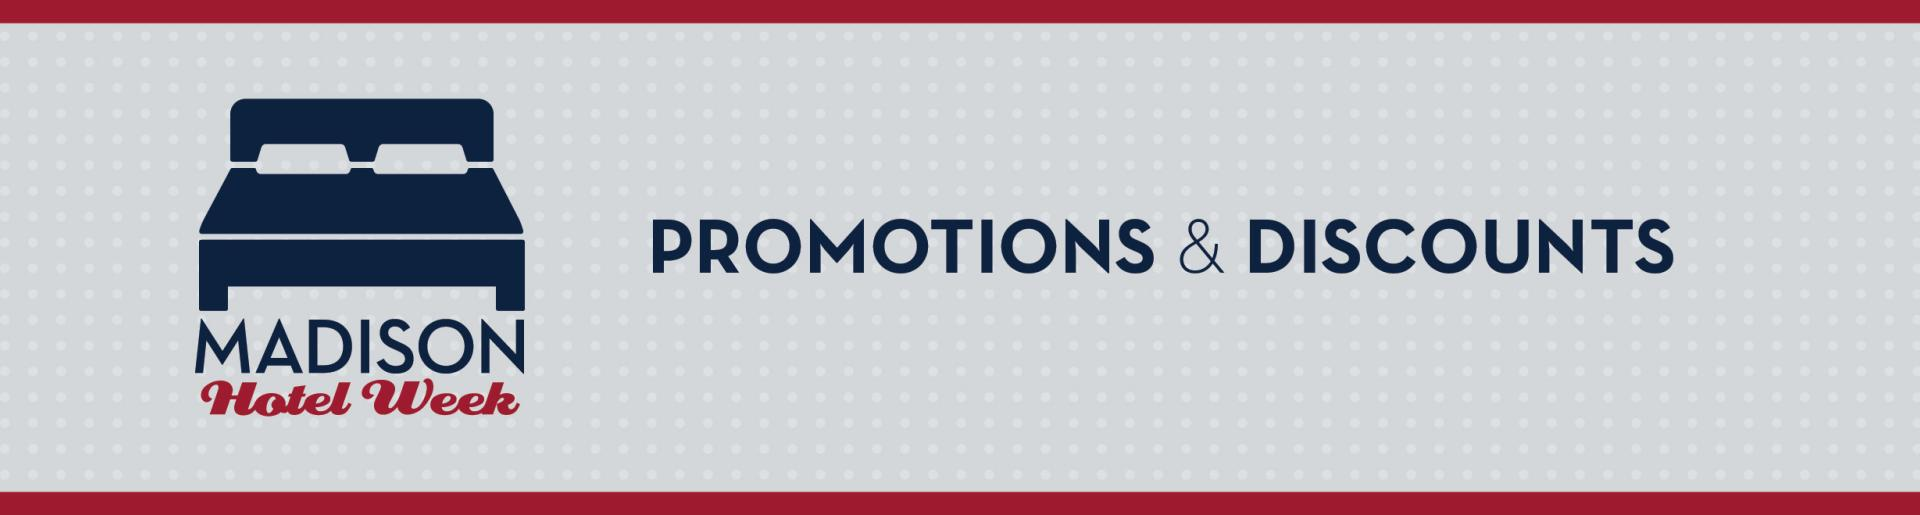 Madison Hotel Week: Promotions